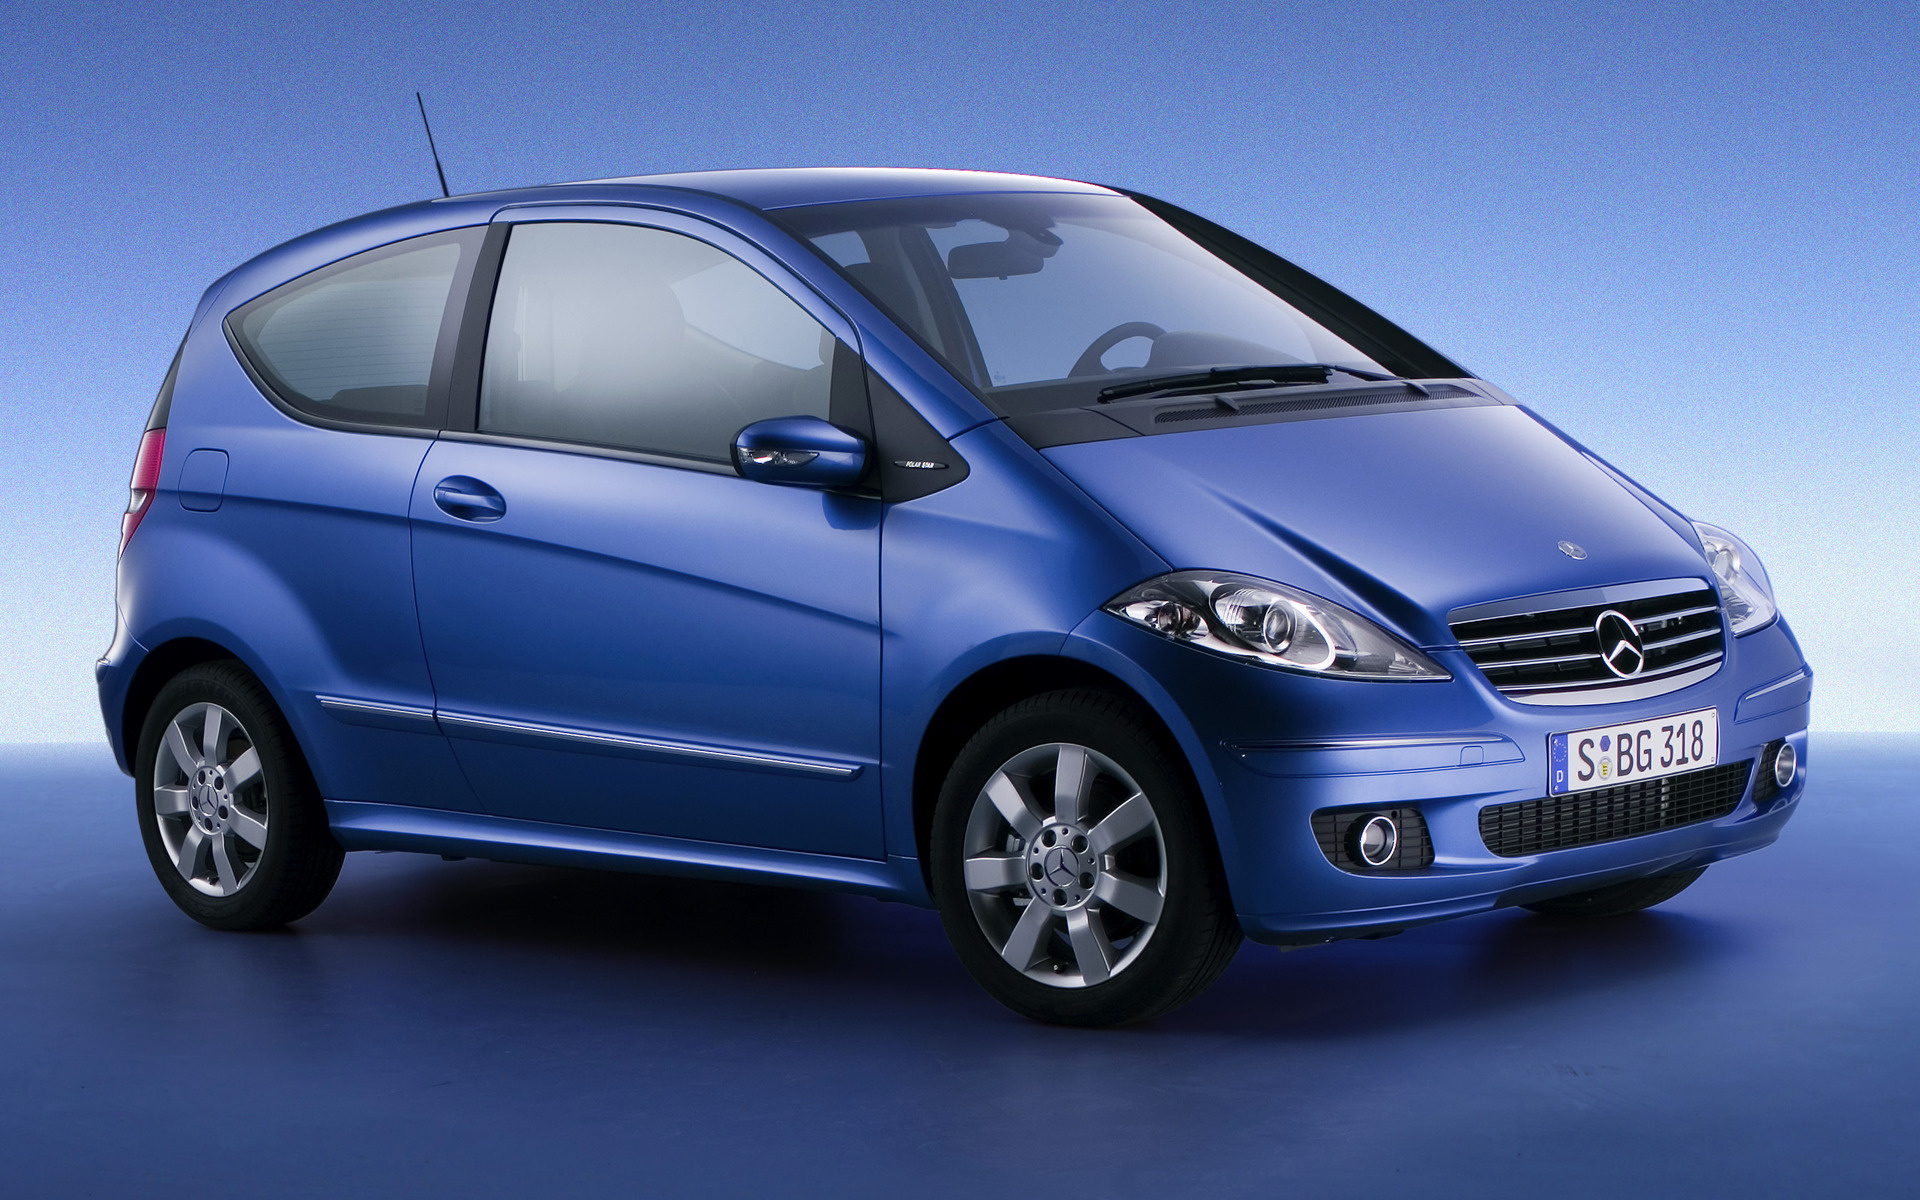 mercedes benz a class polar star 3 door 2006 wallpapers and hd